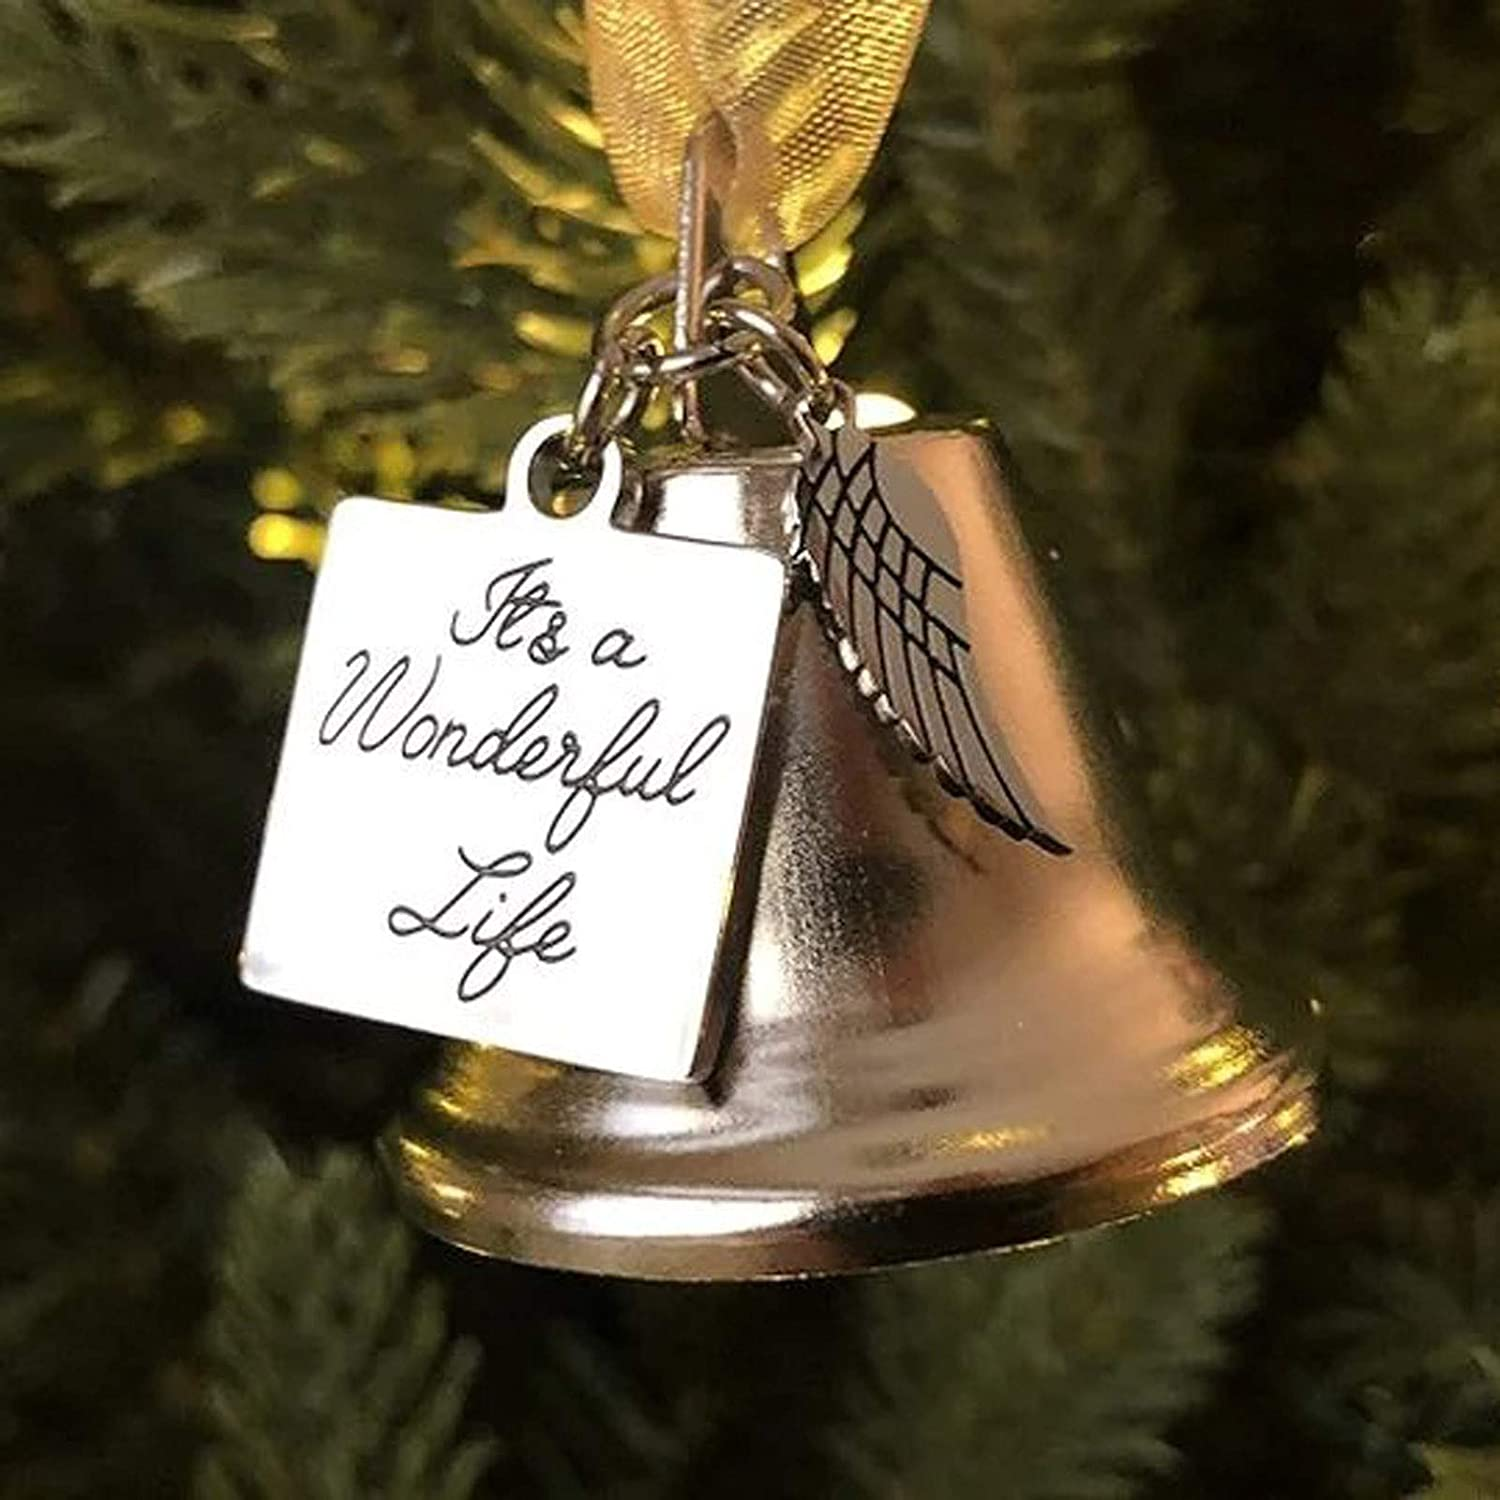 Fuggui Christmas Angel Wings Pendant Iron Bell Ornament It's a Wonderful Life Stainless Steel Tag Christmas Tree Hanging Ornaments Pendants Decorations Home Decor Gifts 5x5 cm (A, 2PC)